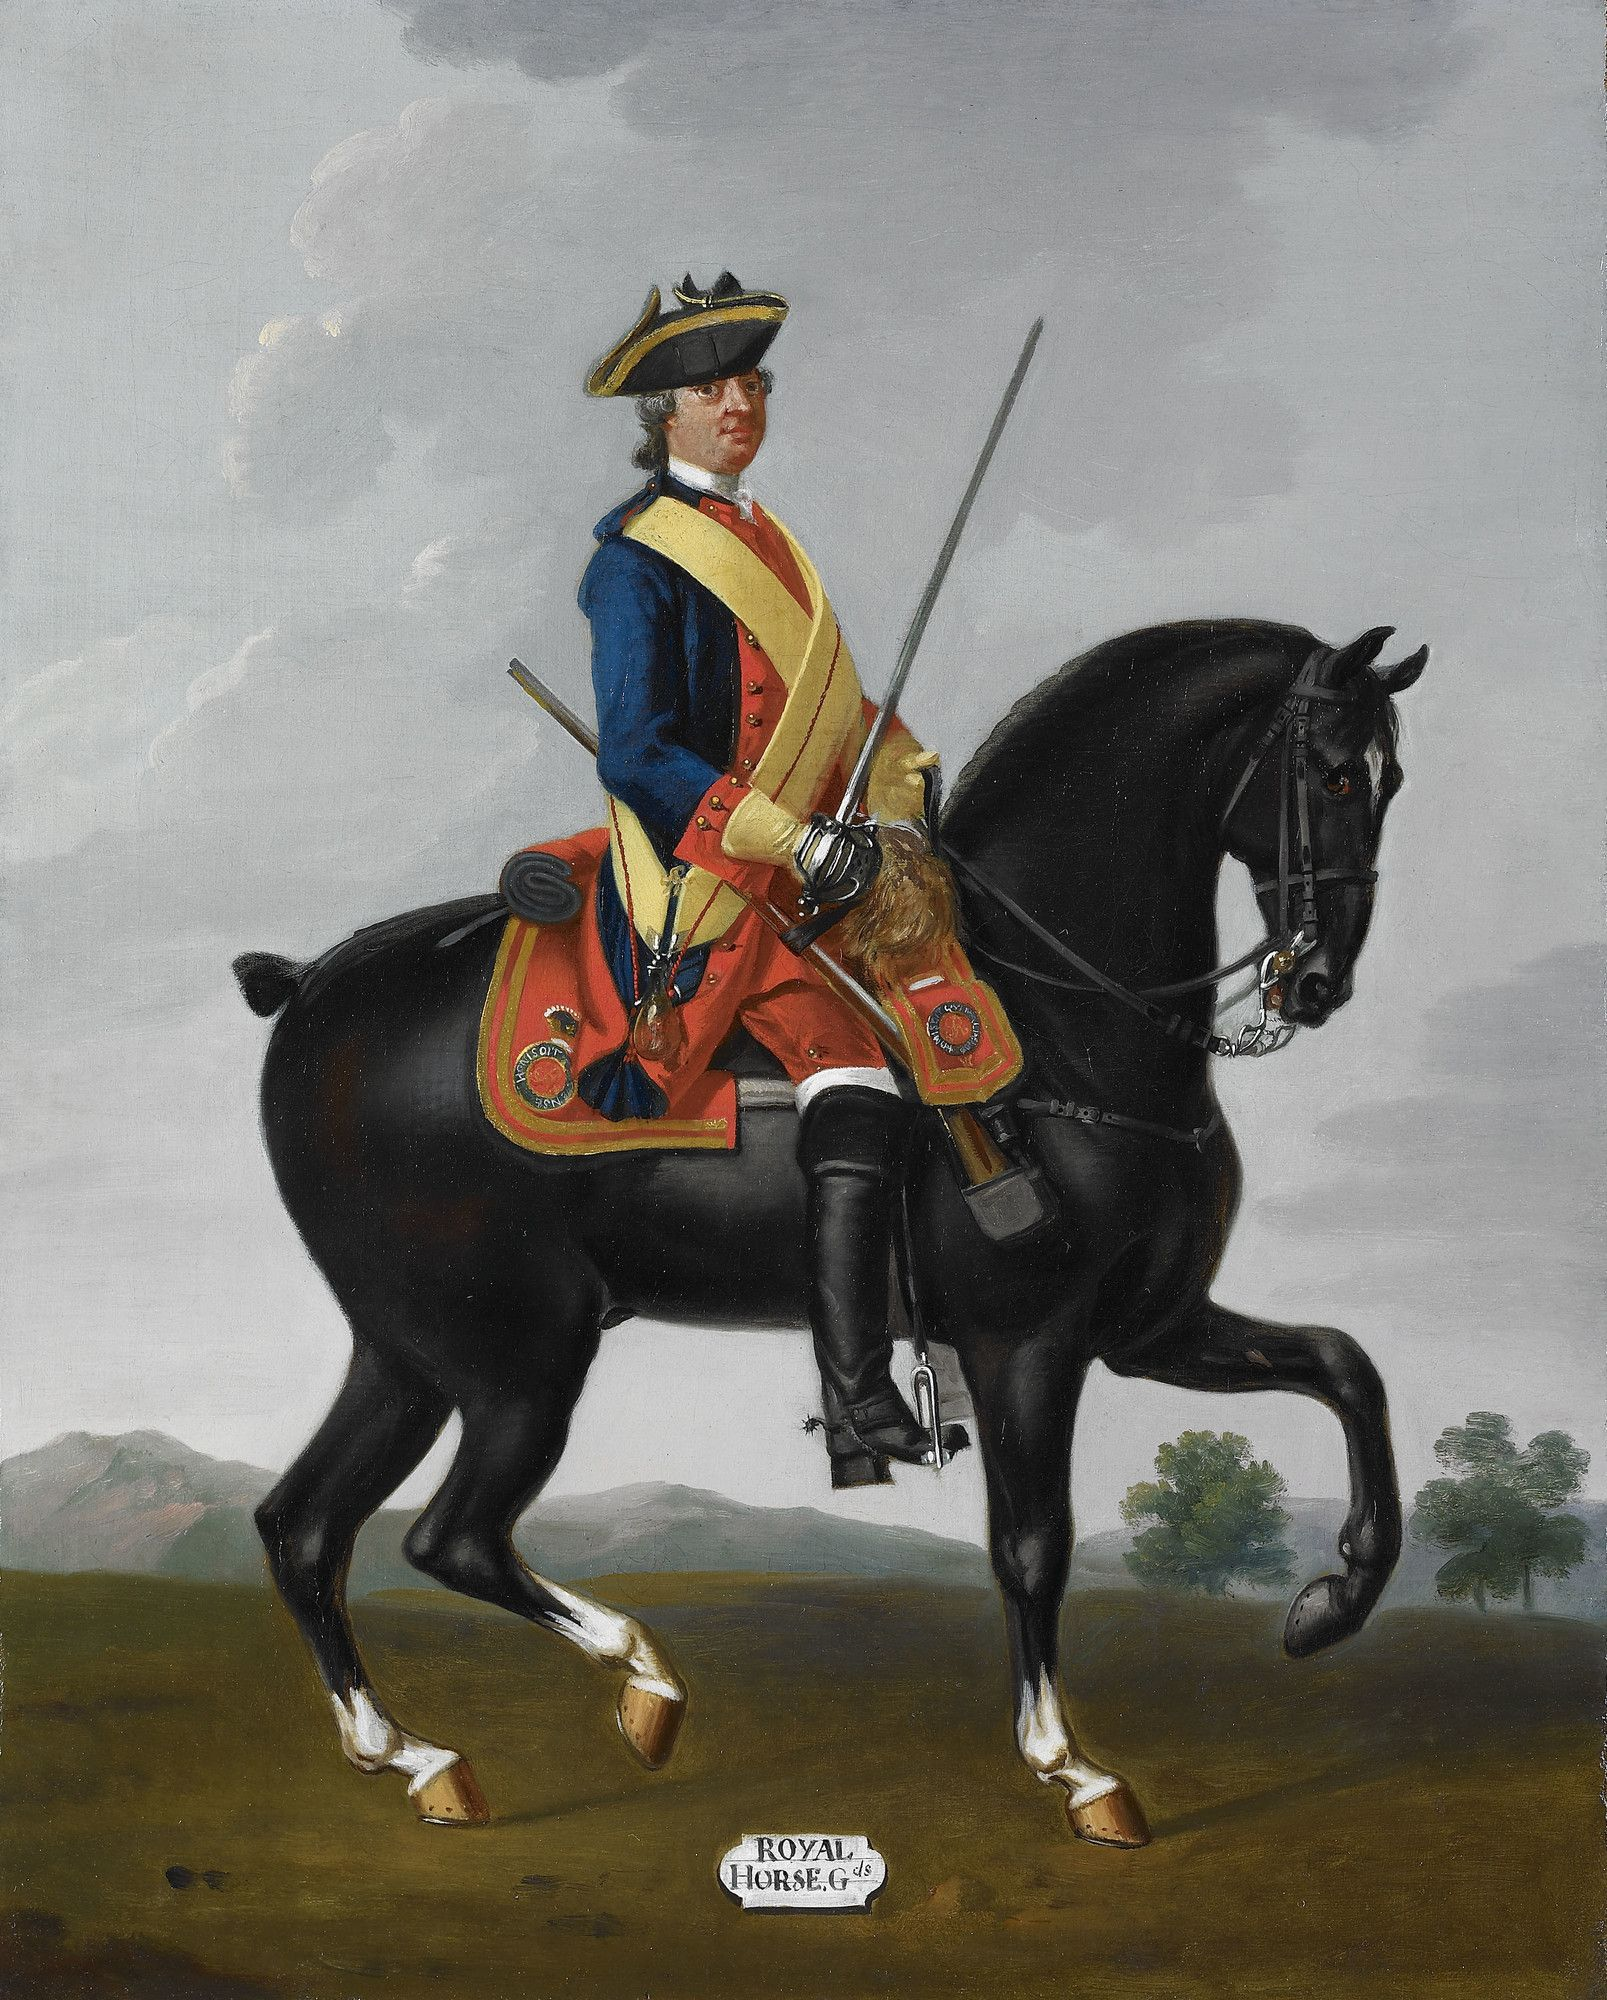 Private Royal Horse Guards The Blues C 1751 Royal Horse Guards Horse Guards Seven Years War